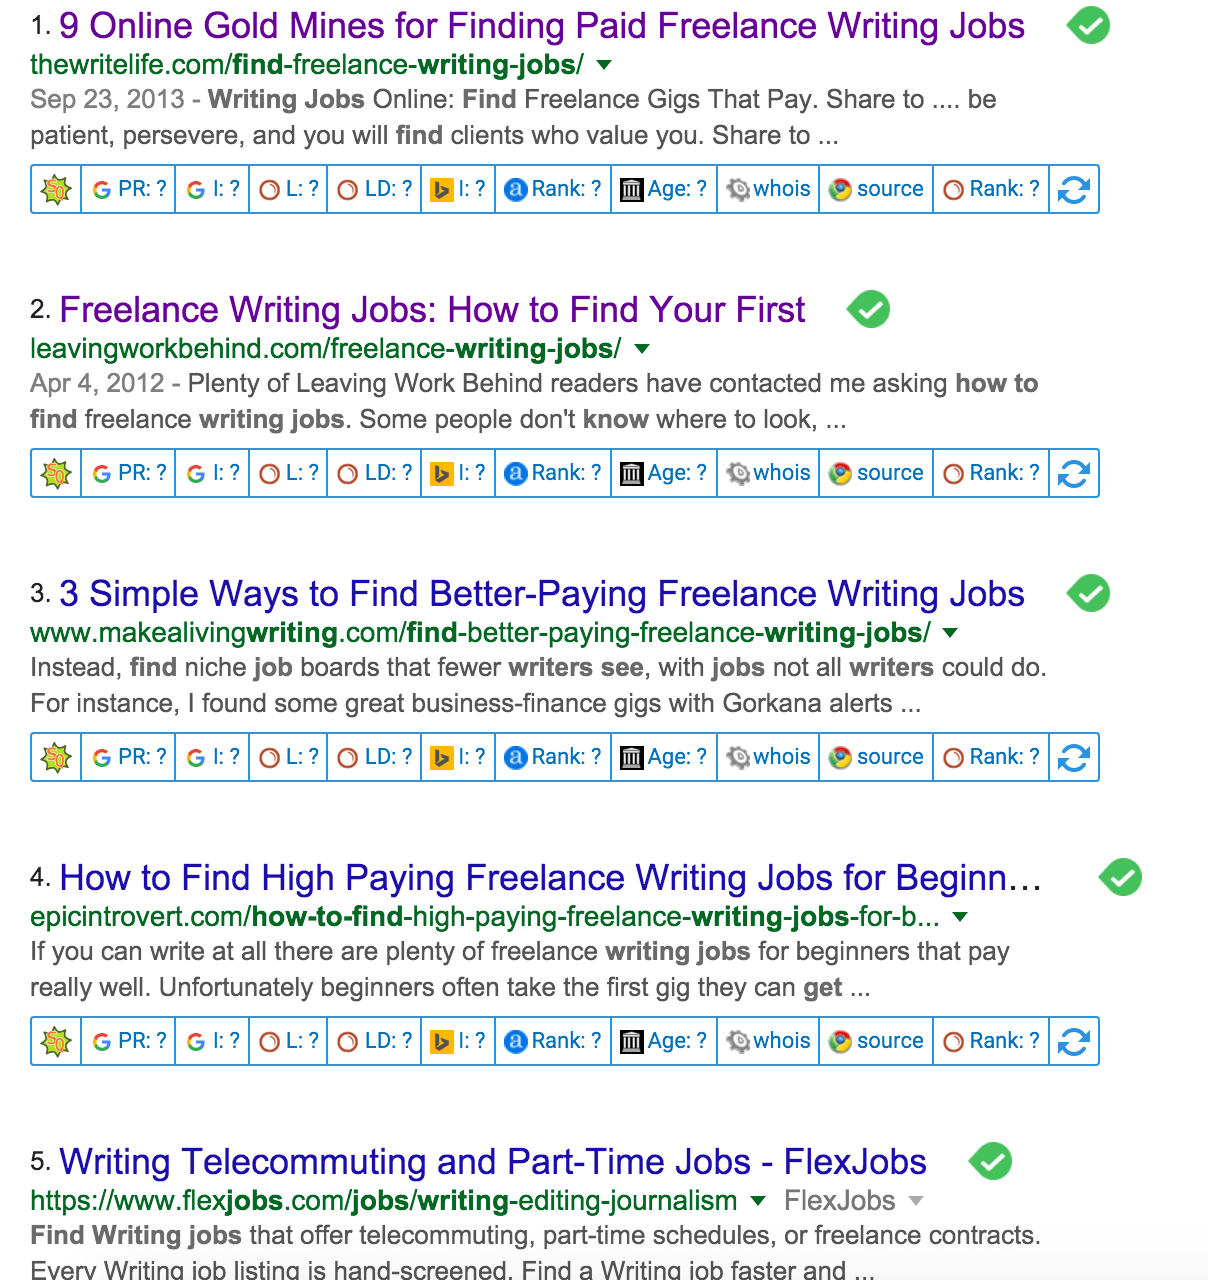 lance paid writing jobs pick up some extra holiday cash  is paid online writing jobs legit i tend to think it s not your finding a